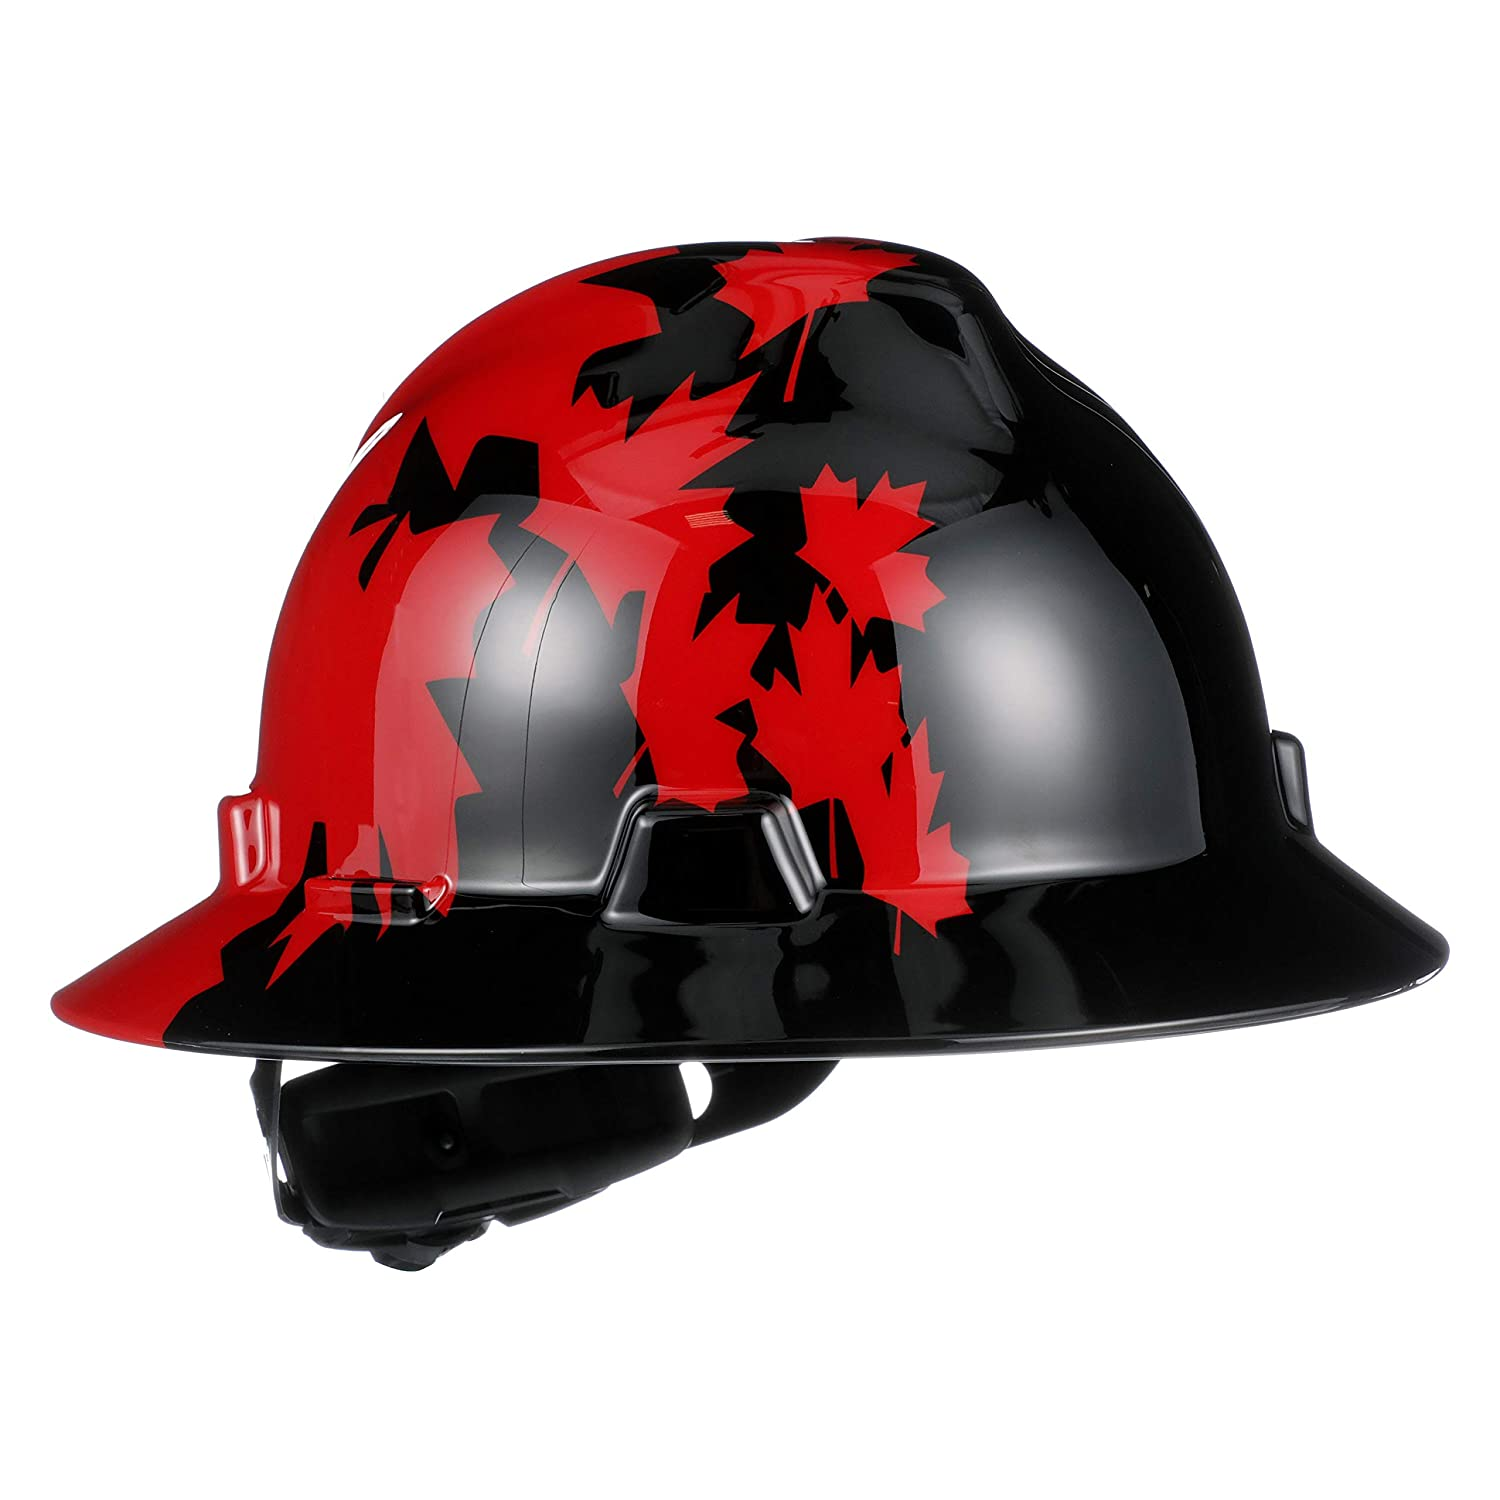 MSA 10082235 Slotted V-Gard Polyethylene Hat with Fas Trac III Suspension, Black with Red Maple Leaf